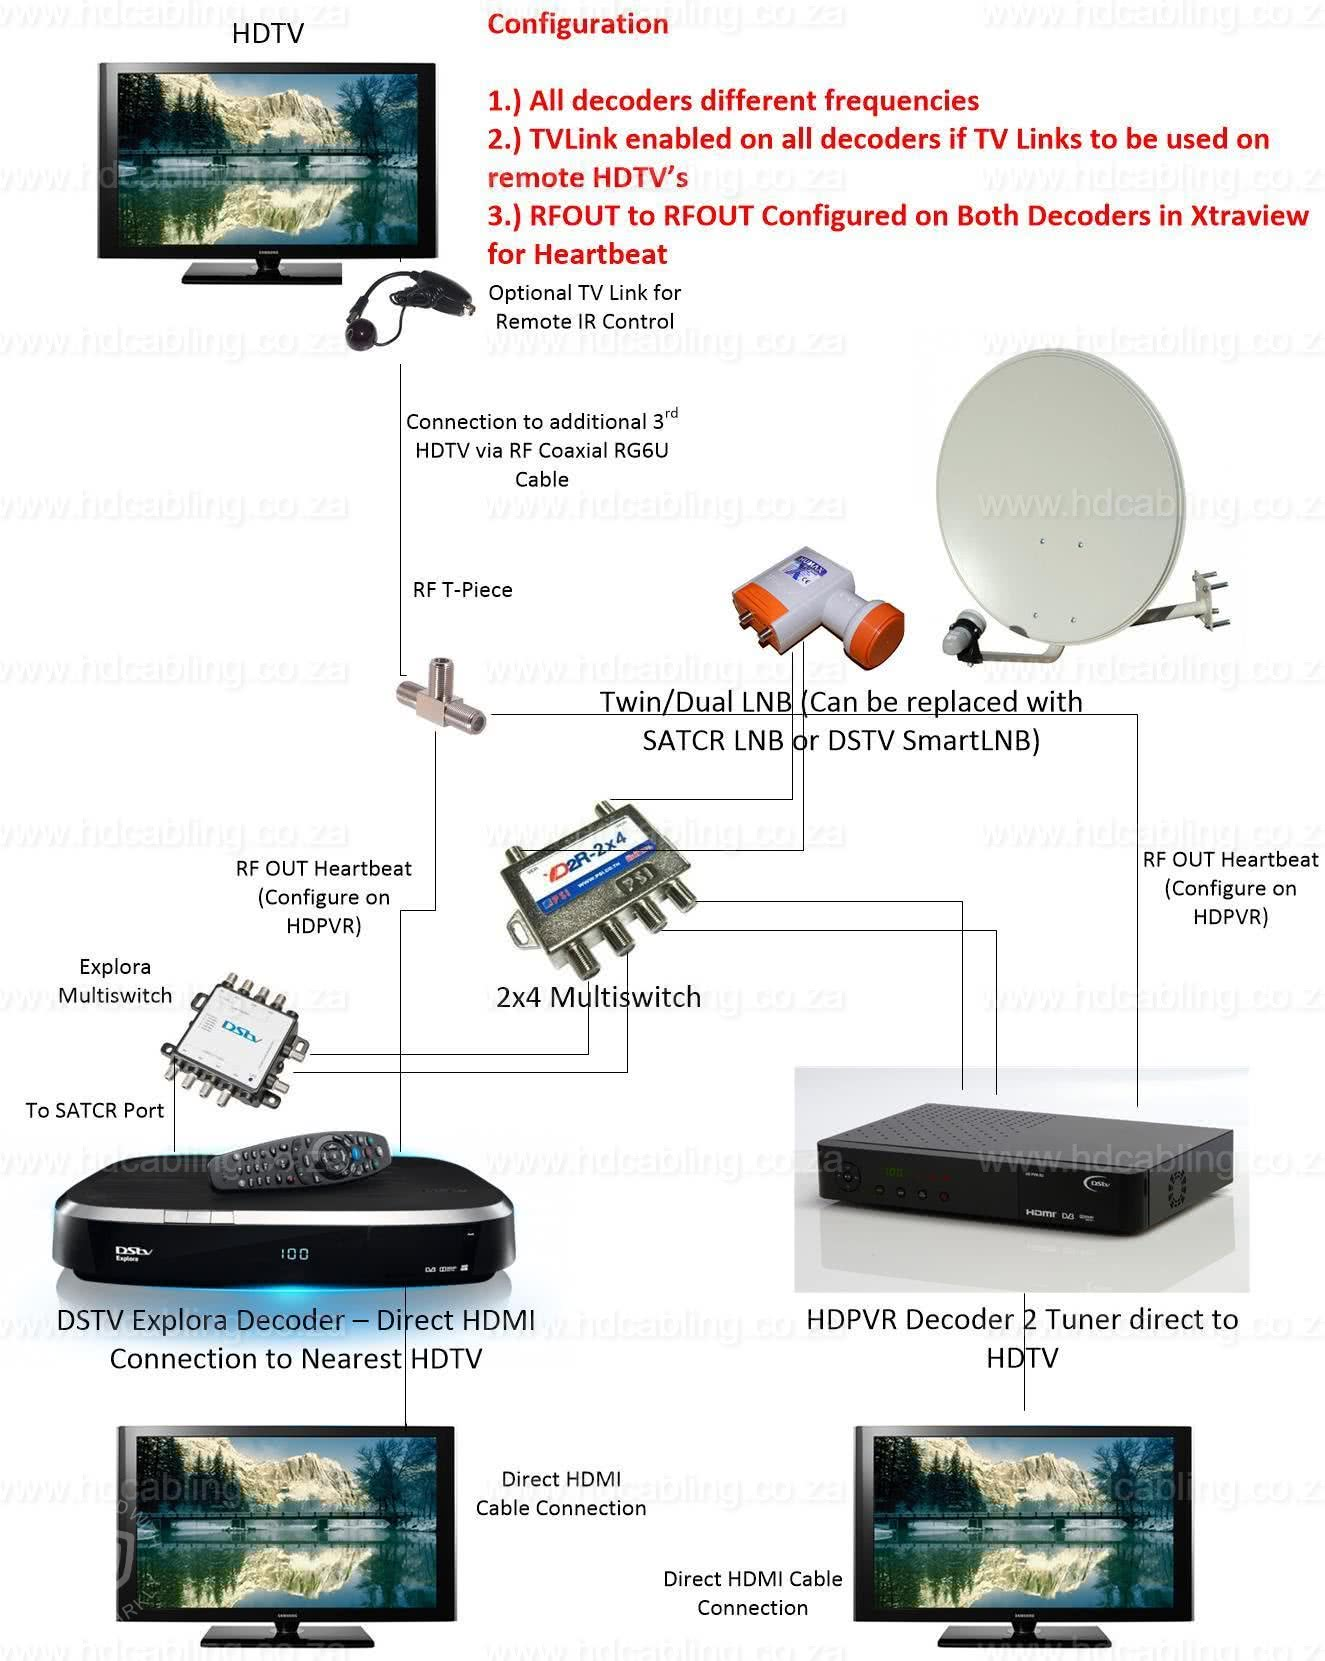 DSTV XtraView Installation & Frequencies (User Bands) for Multichoice Explora/HDPVR and other decoders 7